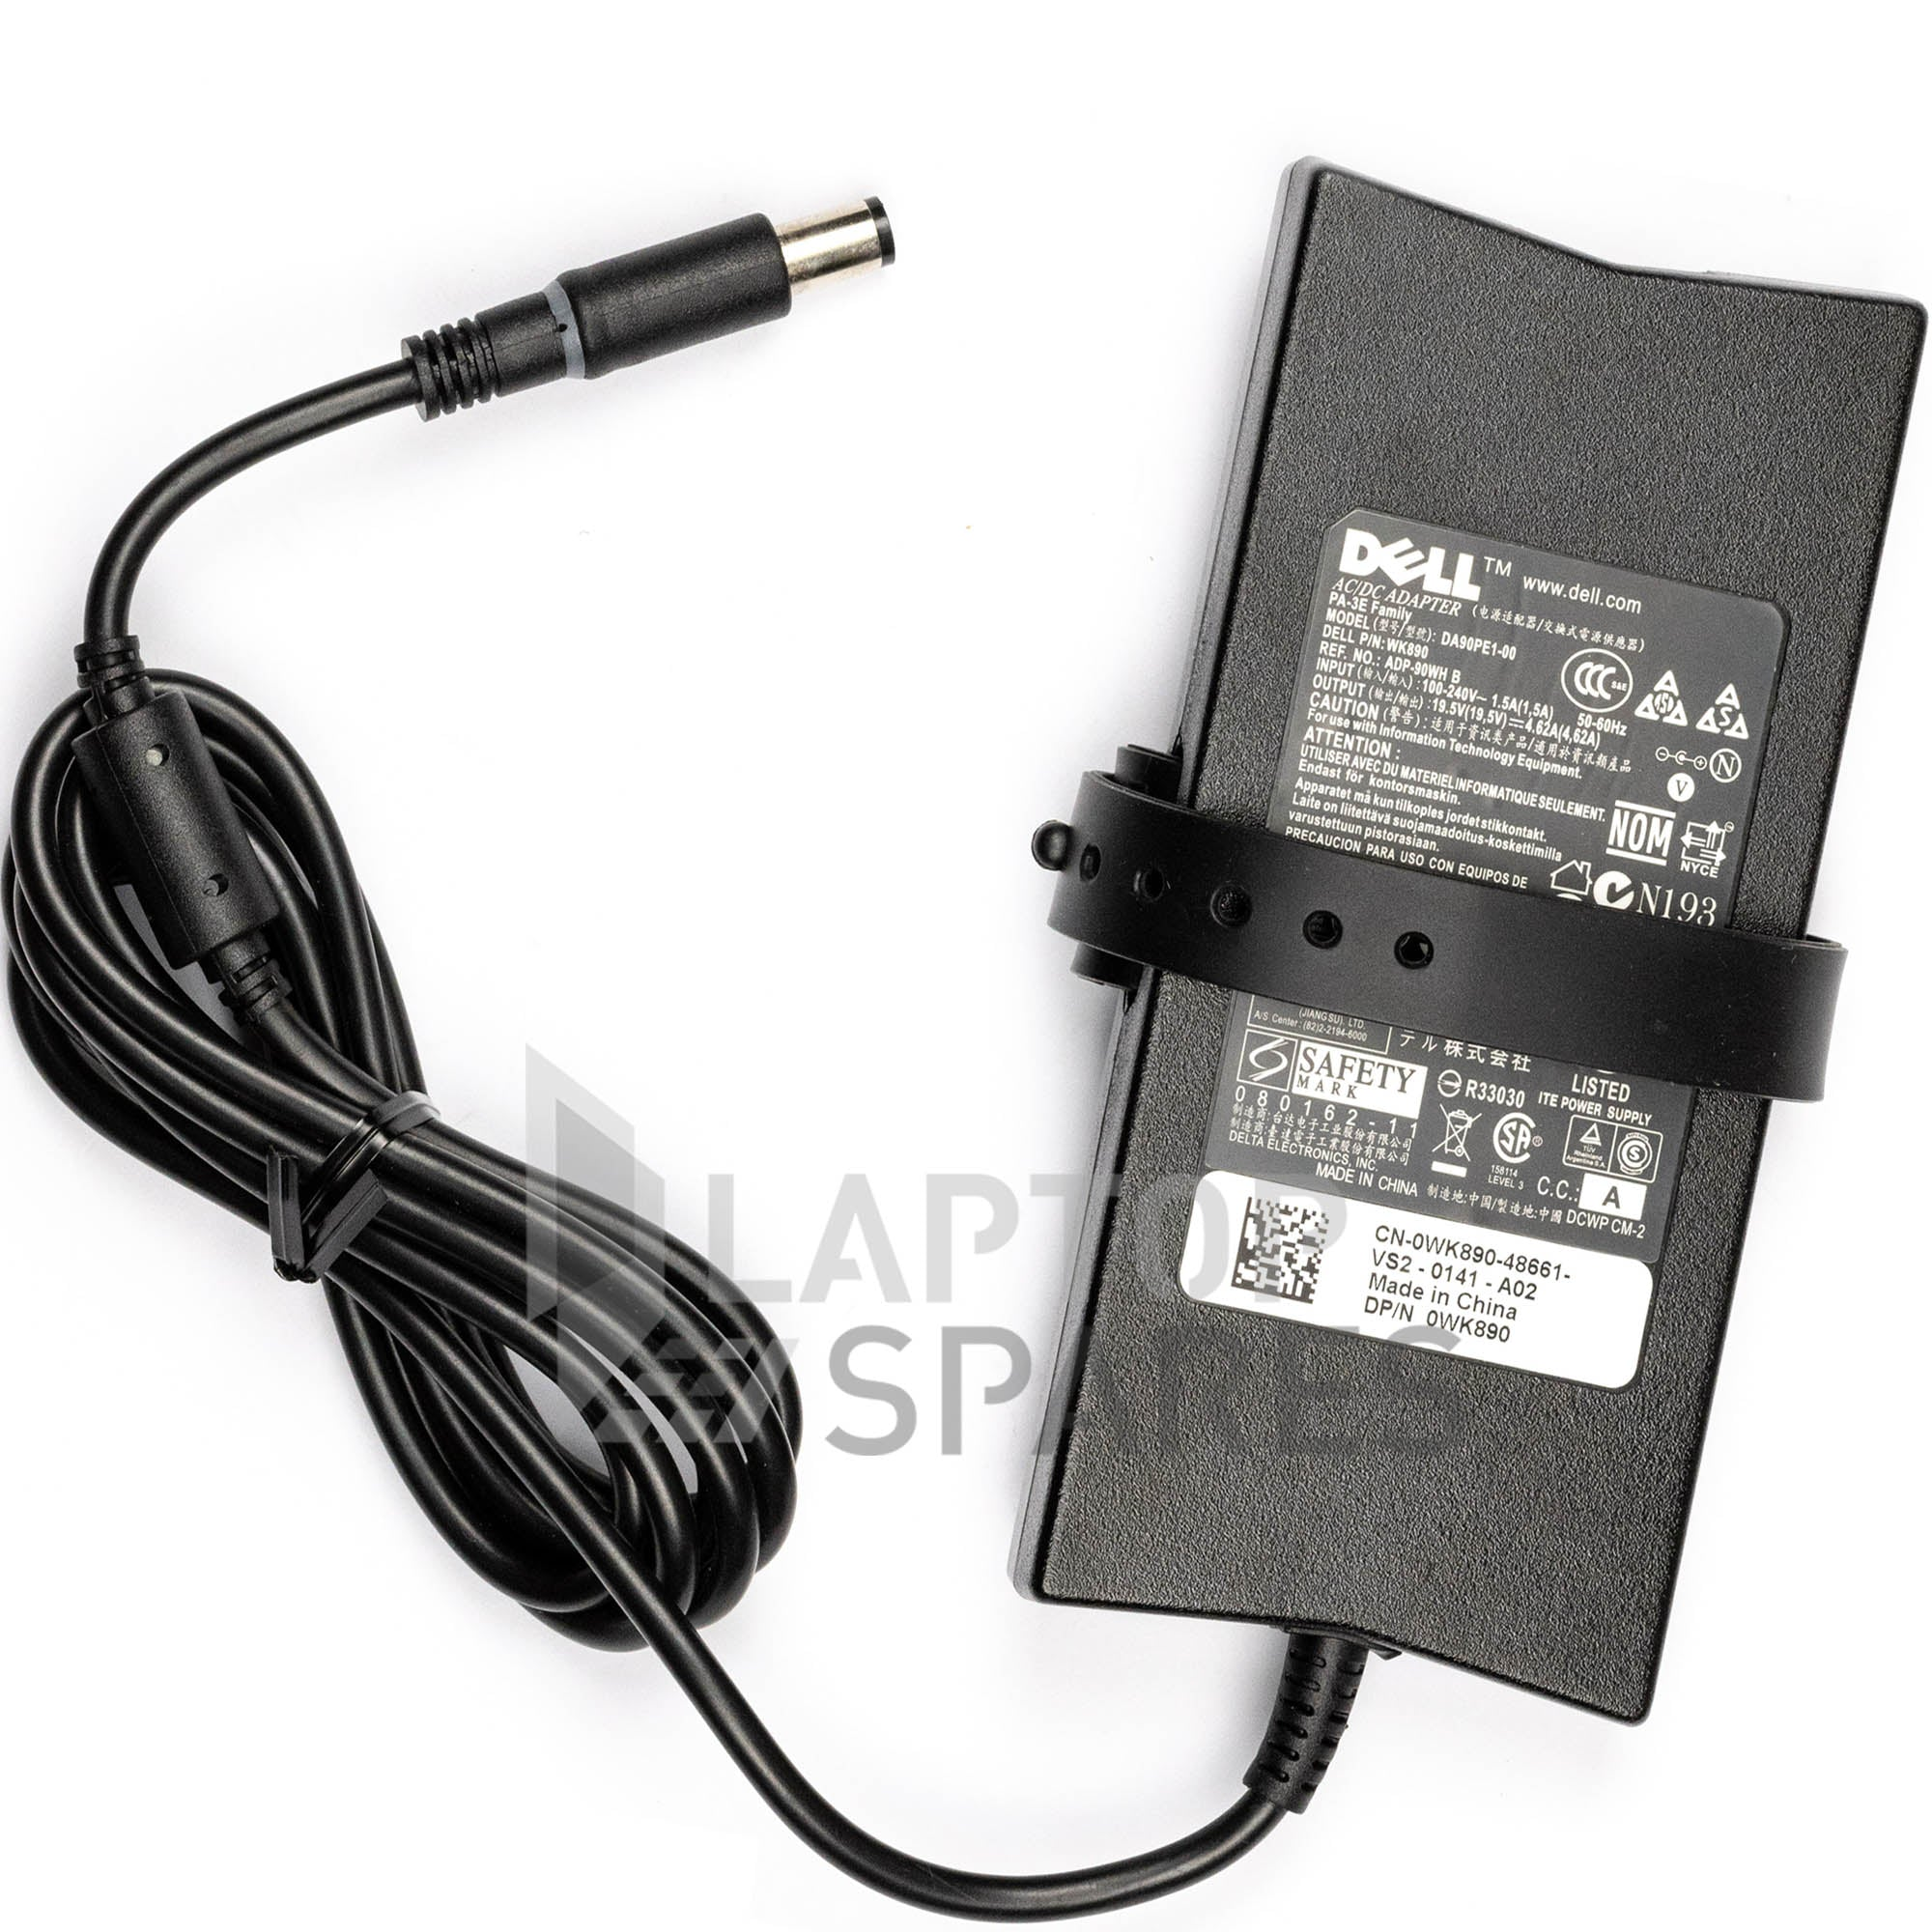 Dell 90W 19.5V 4.62A 7.4*5.0mm Laptop Slim AC Adapter Charger